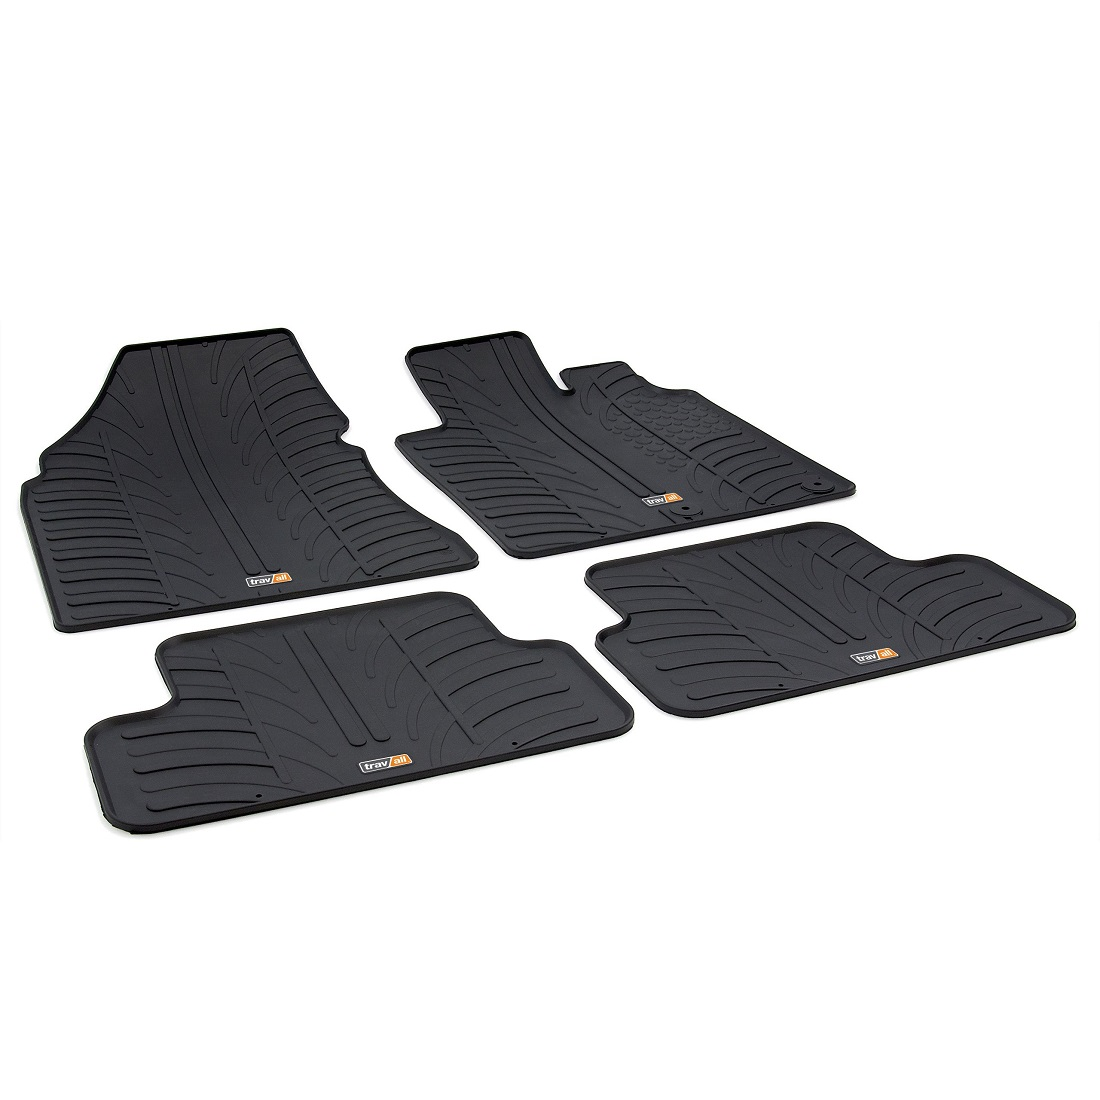 NISSAN QASHQAI TAILORED RUBBER CAR MATS 2007-2014